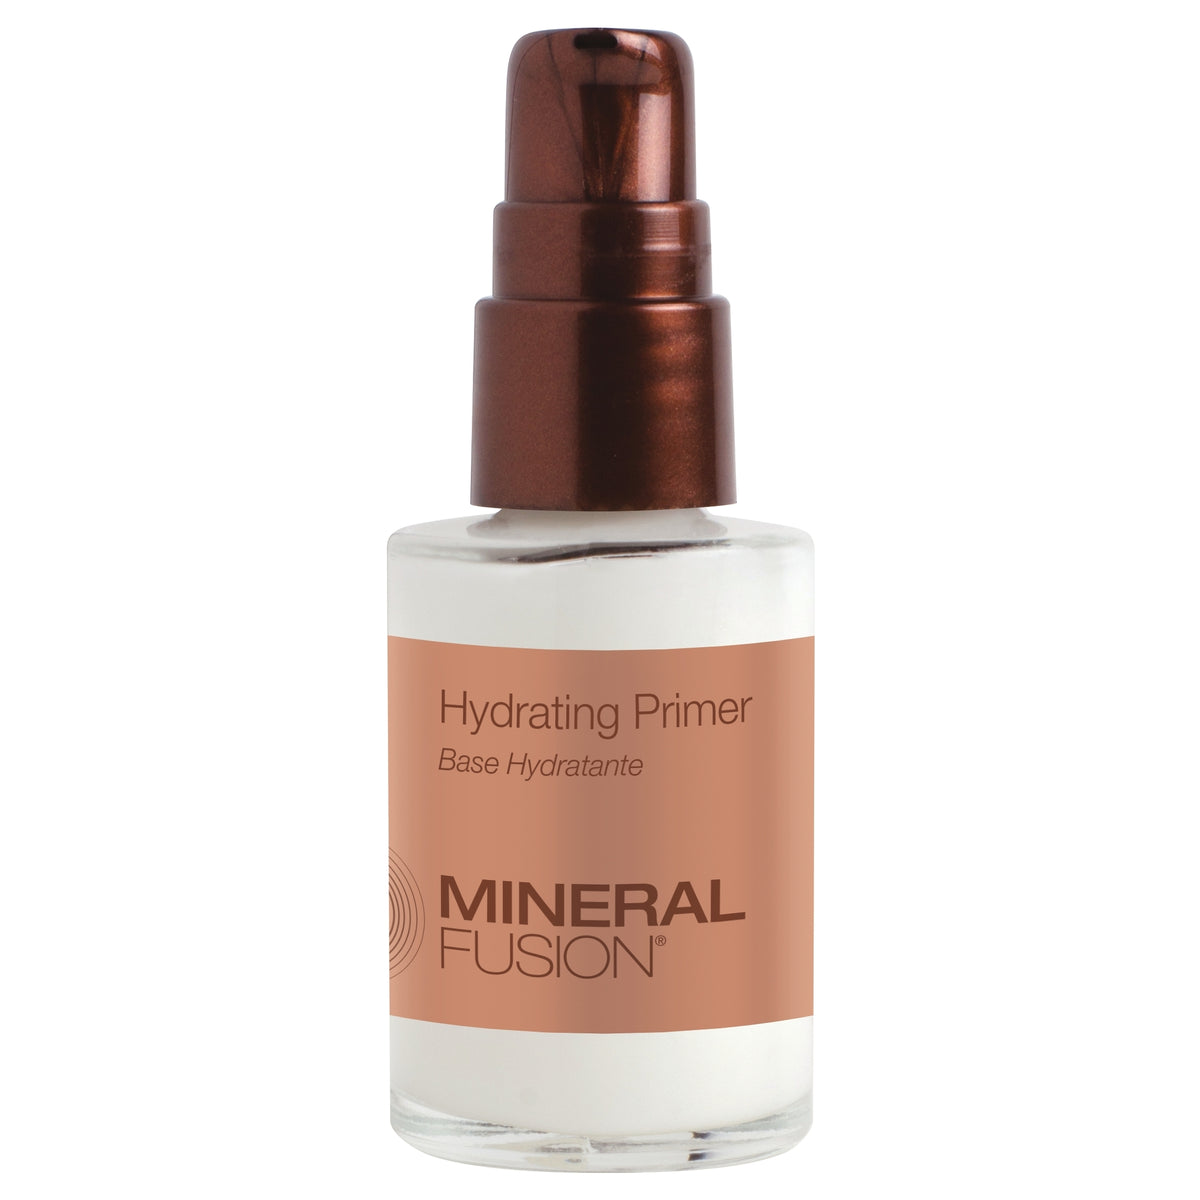 Hydrating Primer - Mineral Fusion